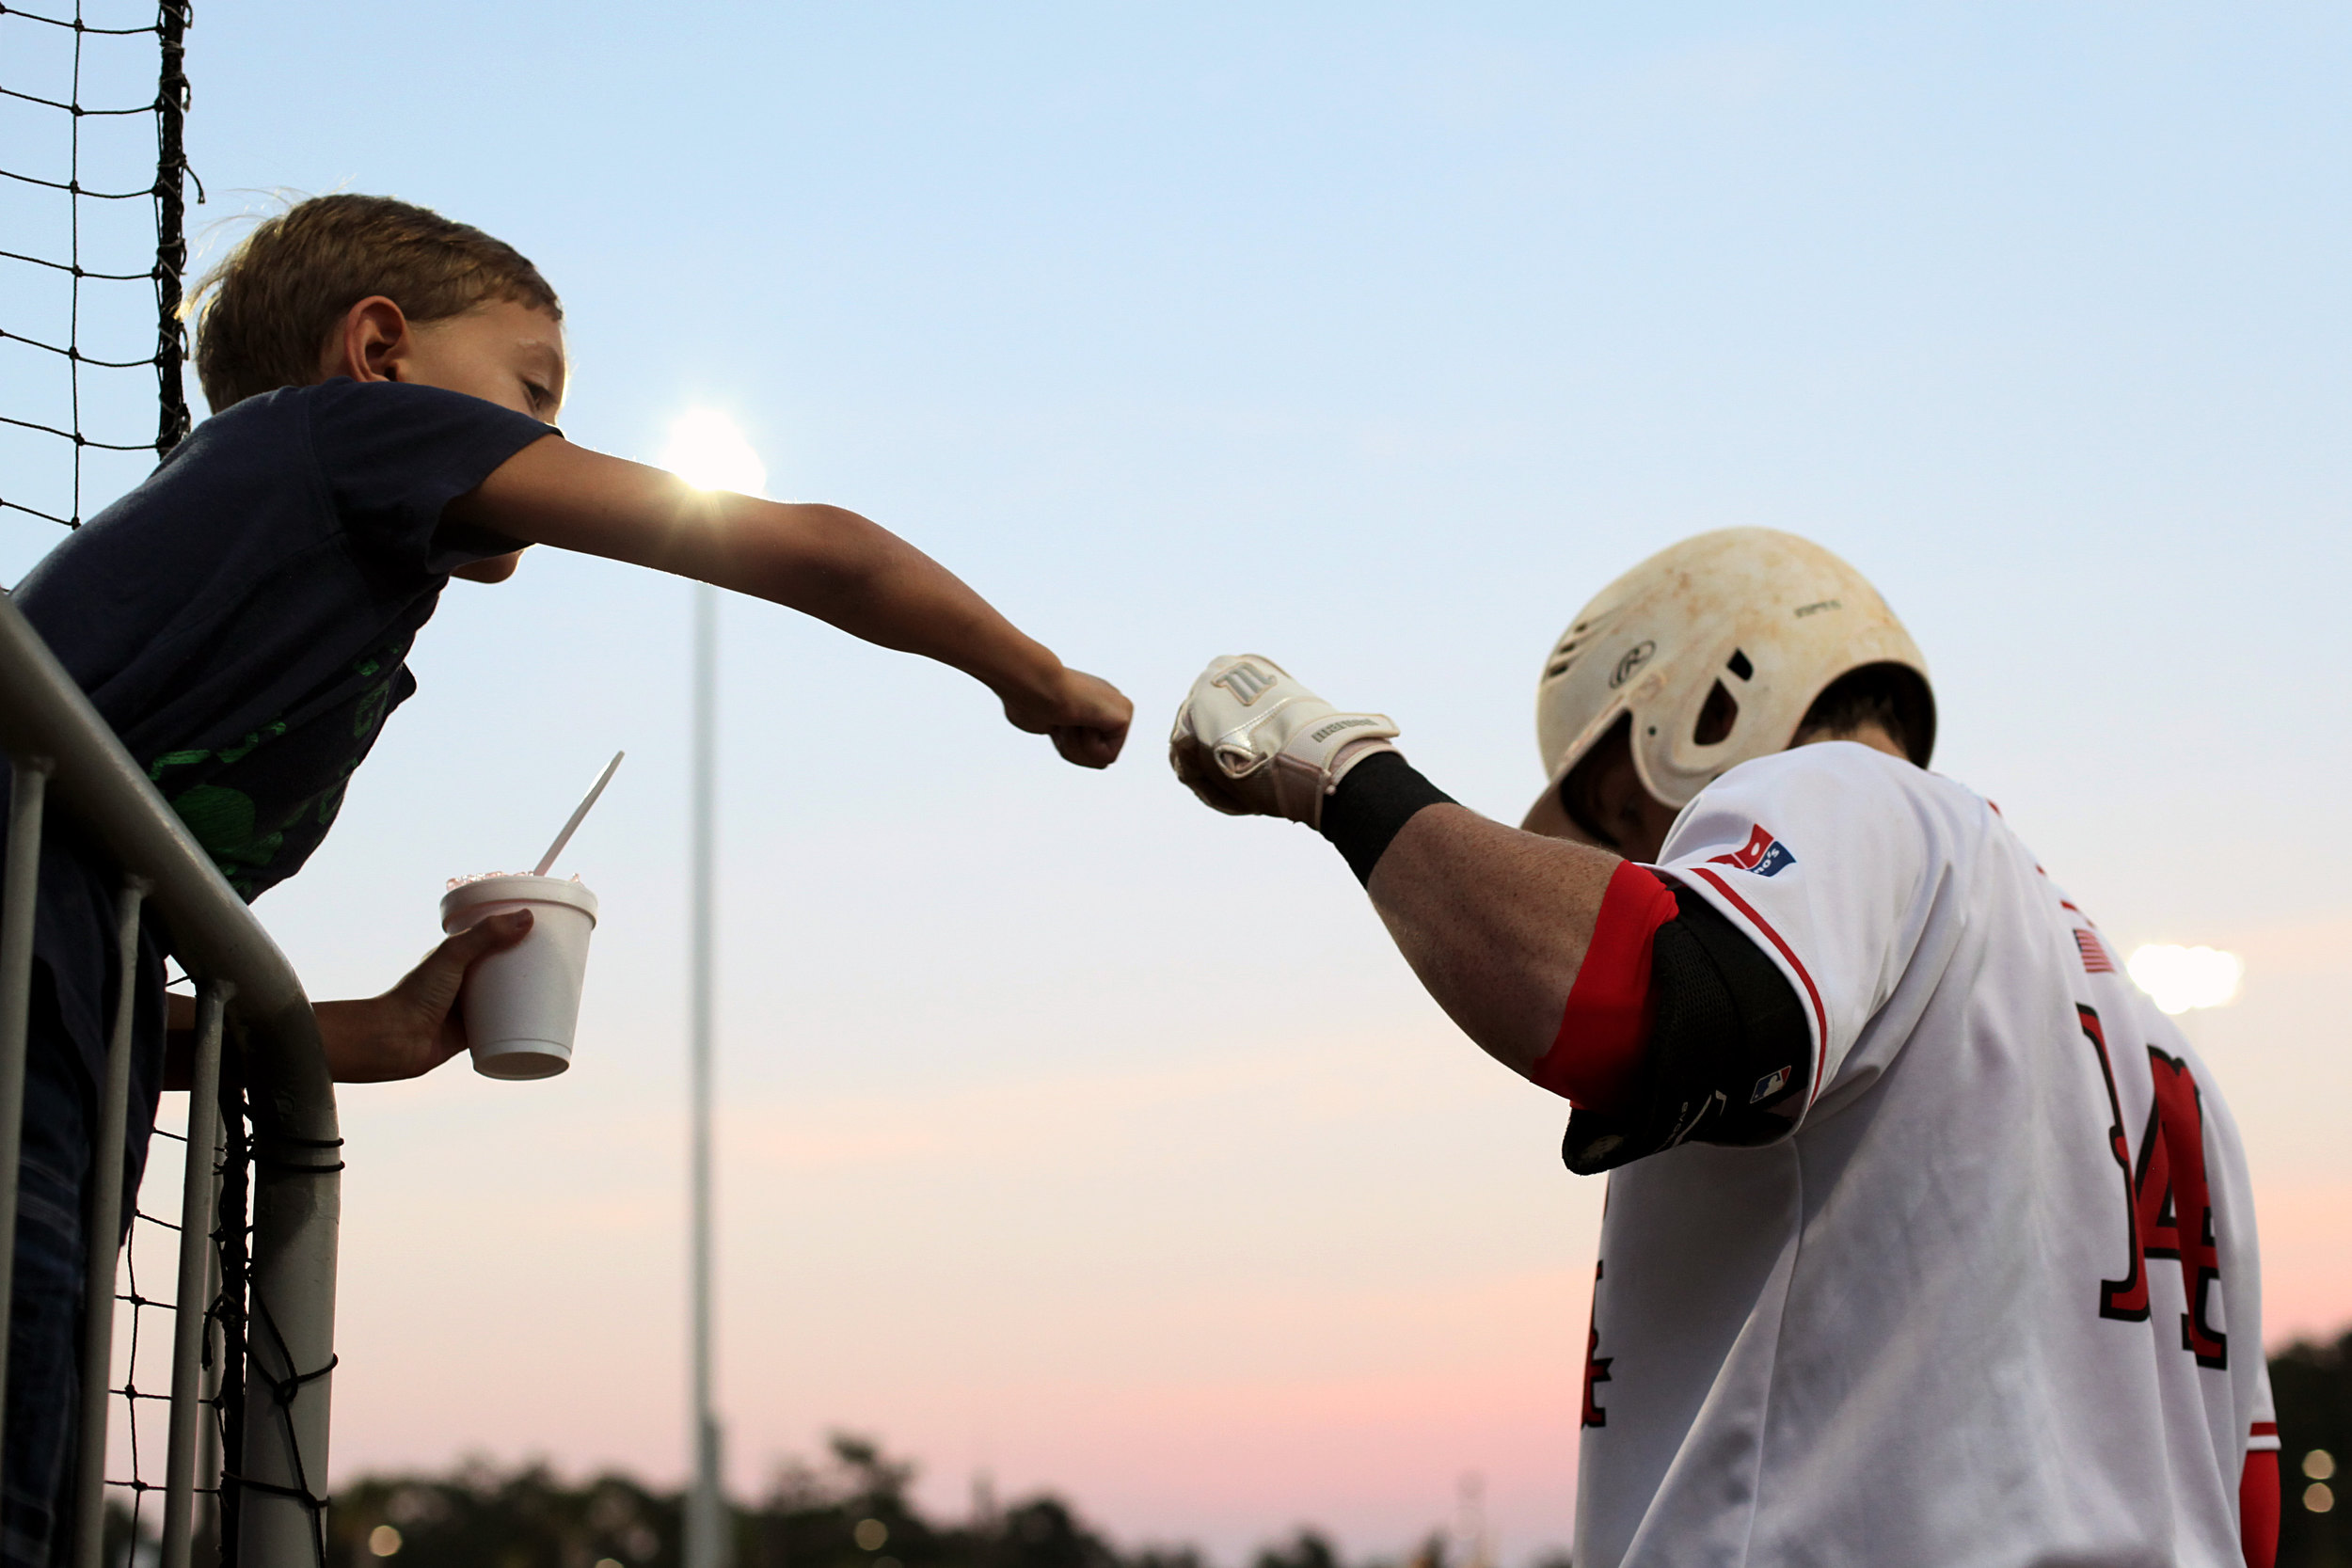 A Florence RedWolves fan fist-bumps the RedWolves' Brandon Rawe as he steps out of his team's dugout. The RedWolves beat the Peninsula Pilots, 4-1, in the first game of the Petitt Cup Championship Series on Thursday night, August 14, 2014, at Sparrow Stadium in Florence, S.C.